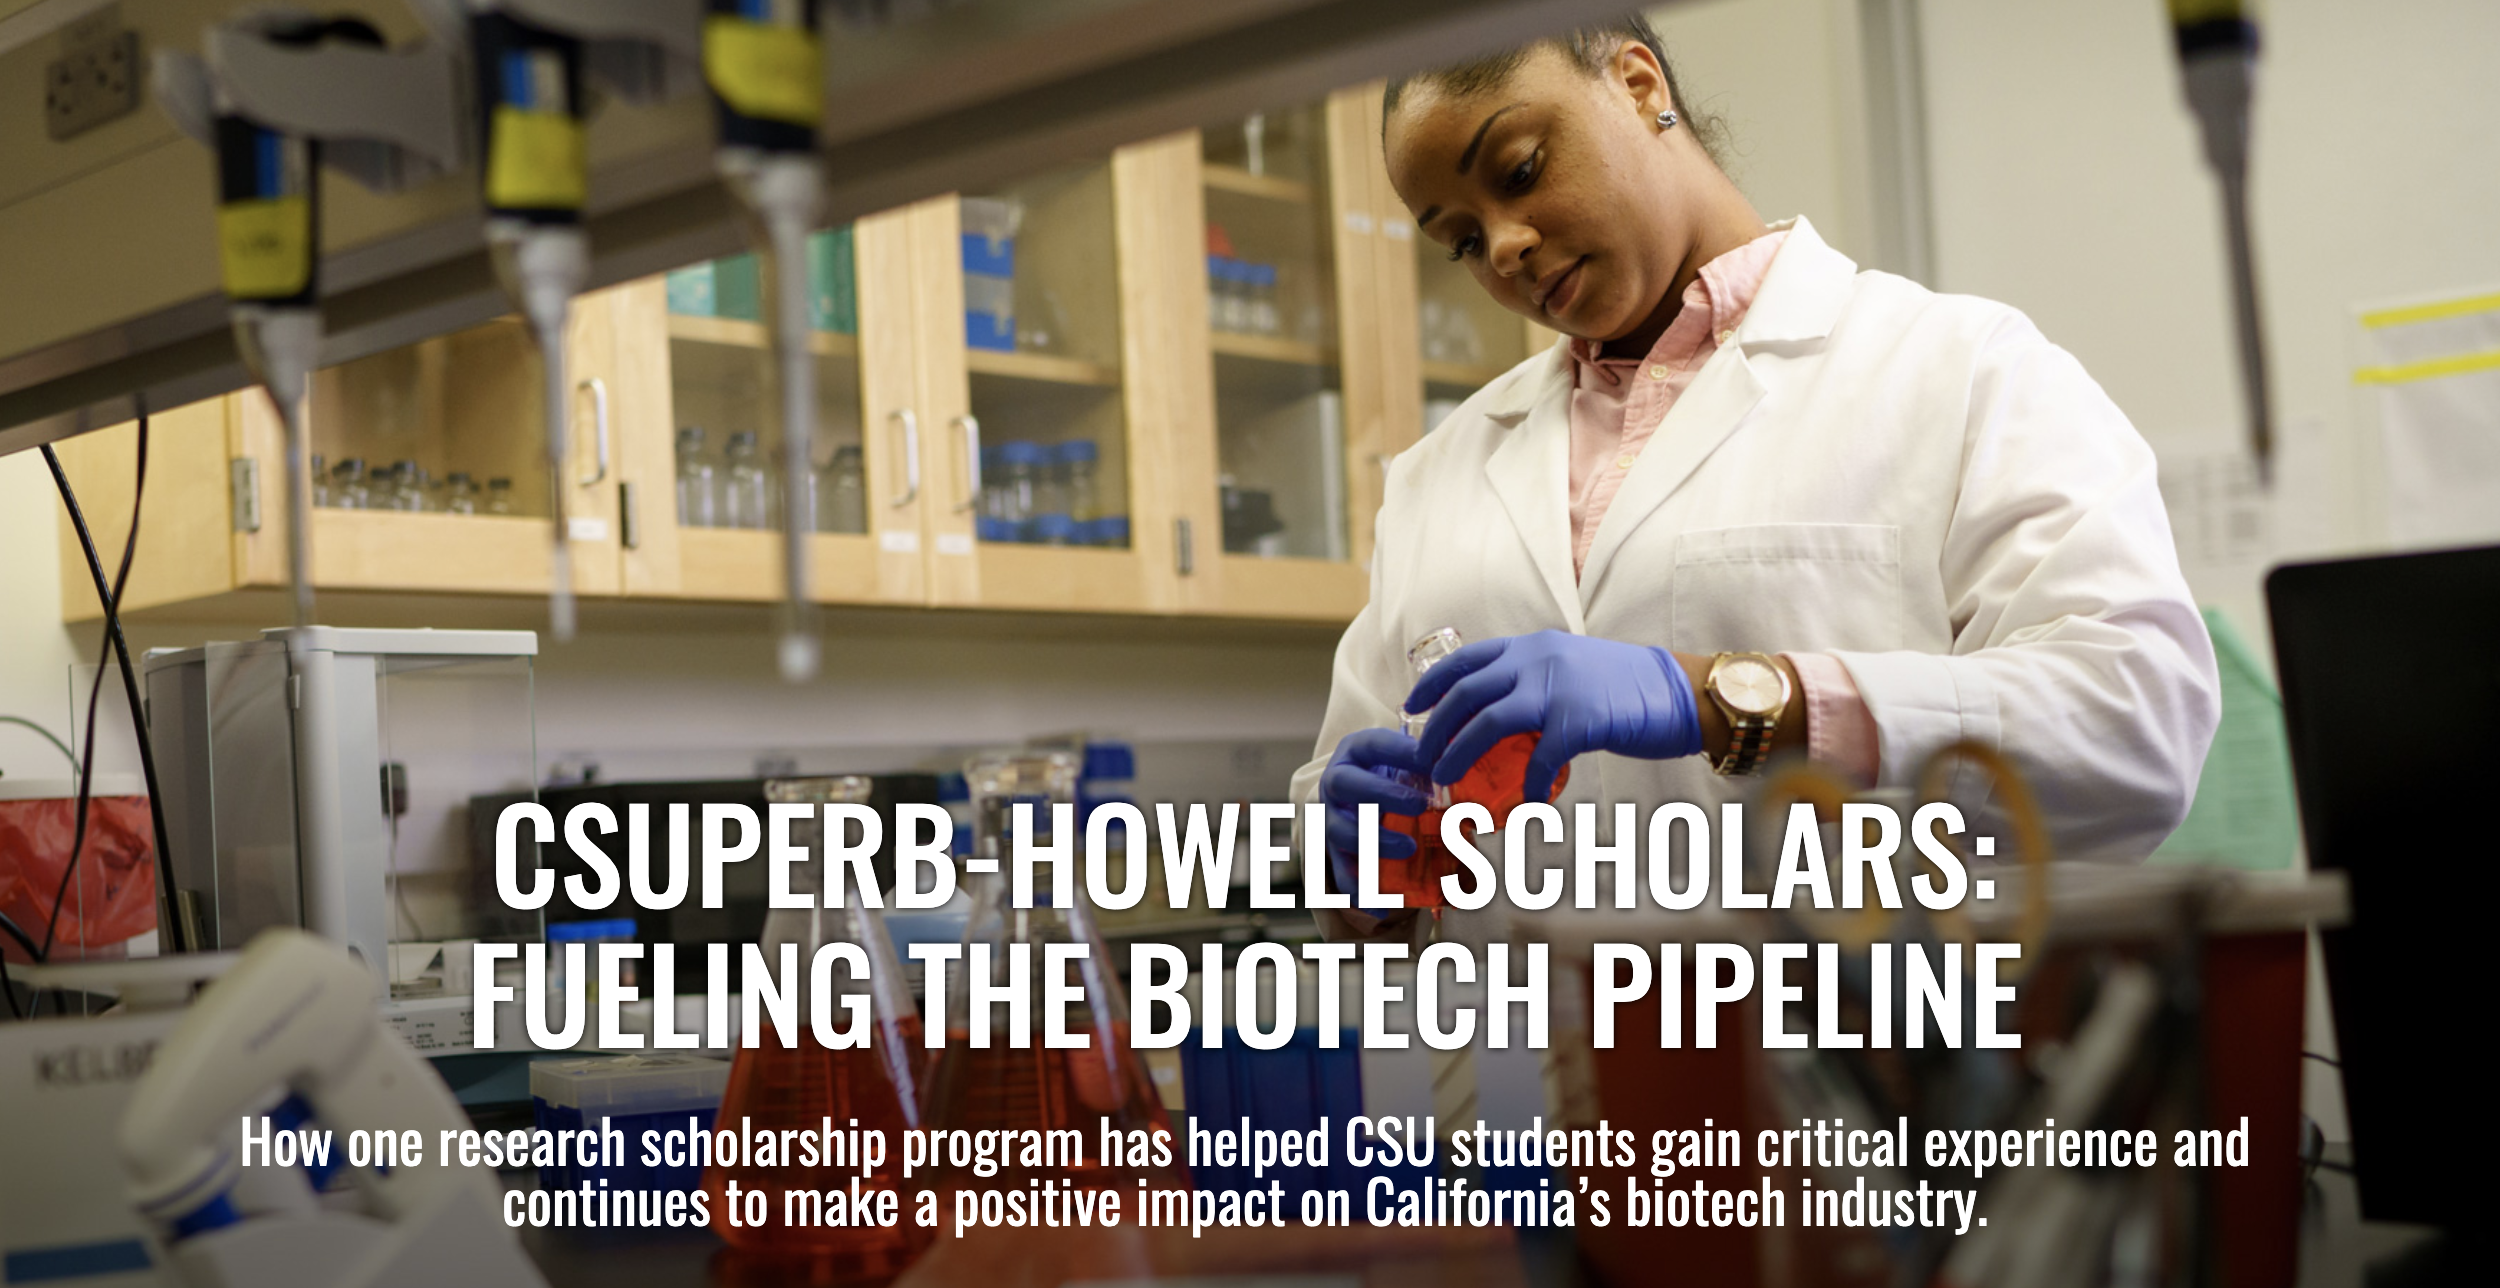 CSUPERB-Howell Research Scholarship program